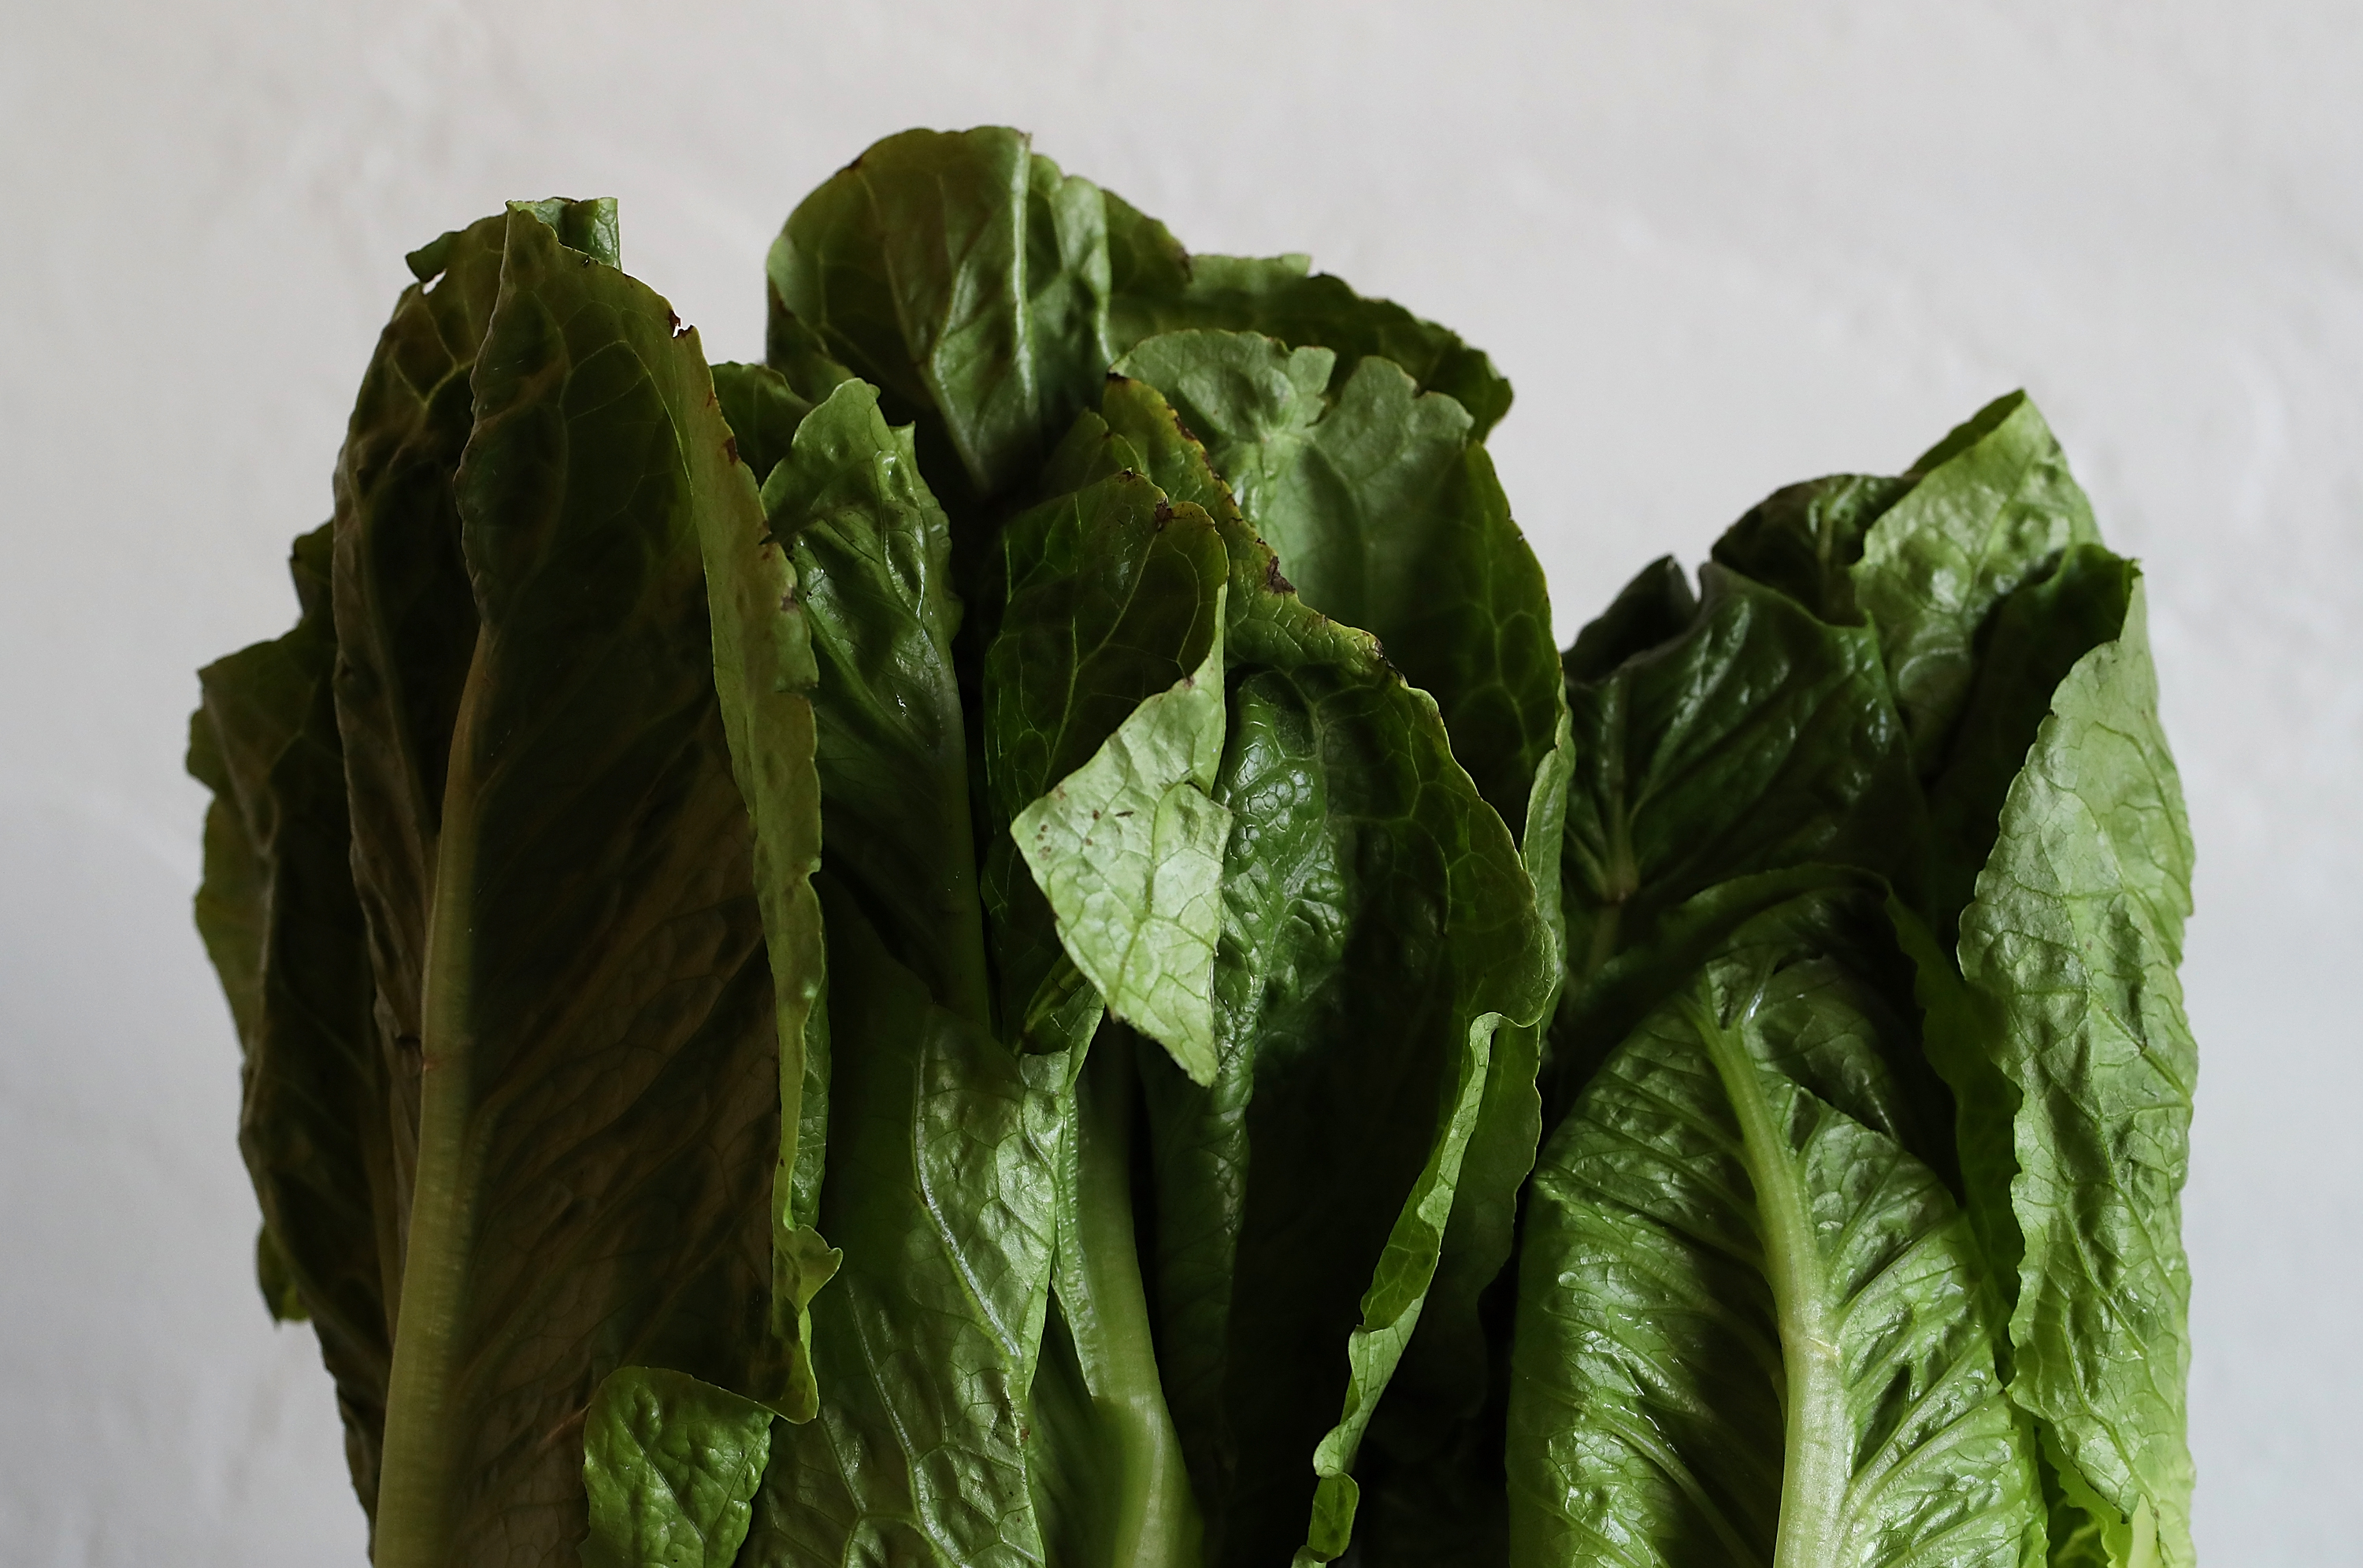 Romaine lettuce warning Don t eat any CDC advises Throw it all